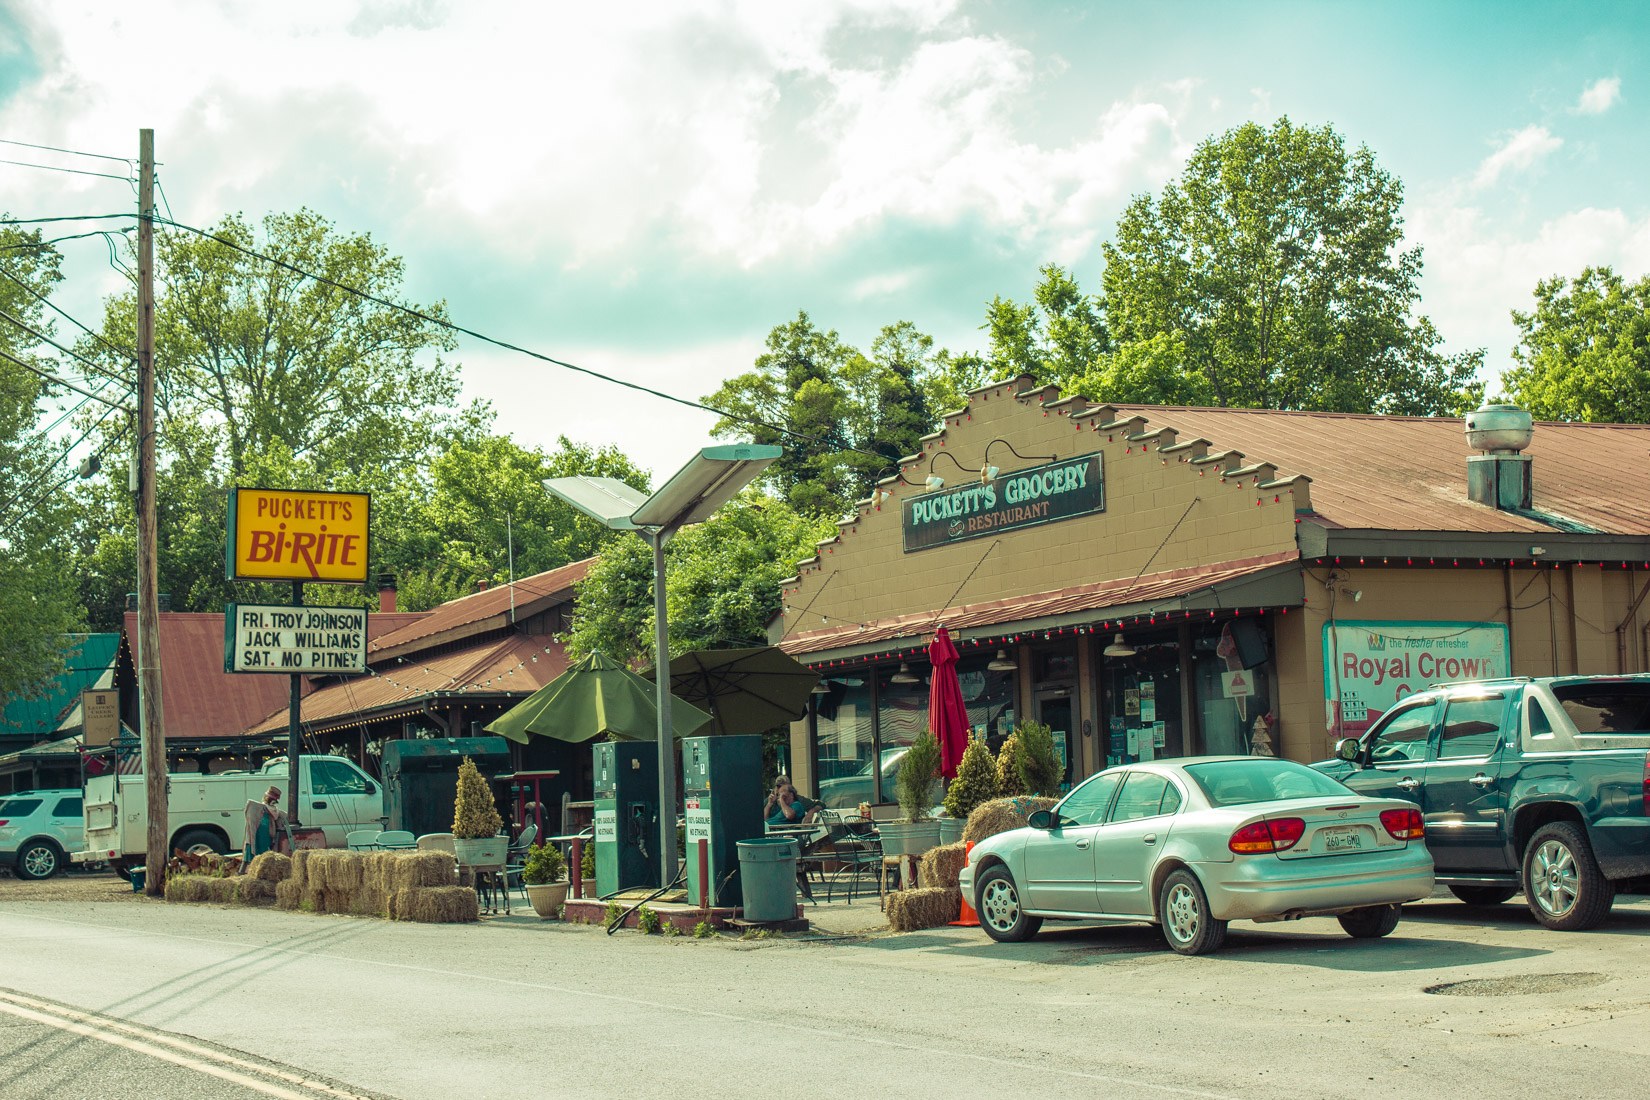 Leiper's Fork Pucketts Exterior